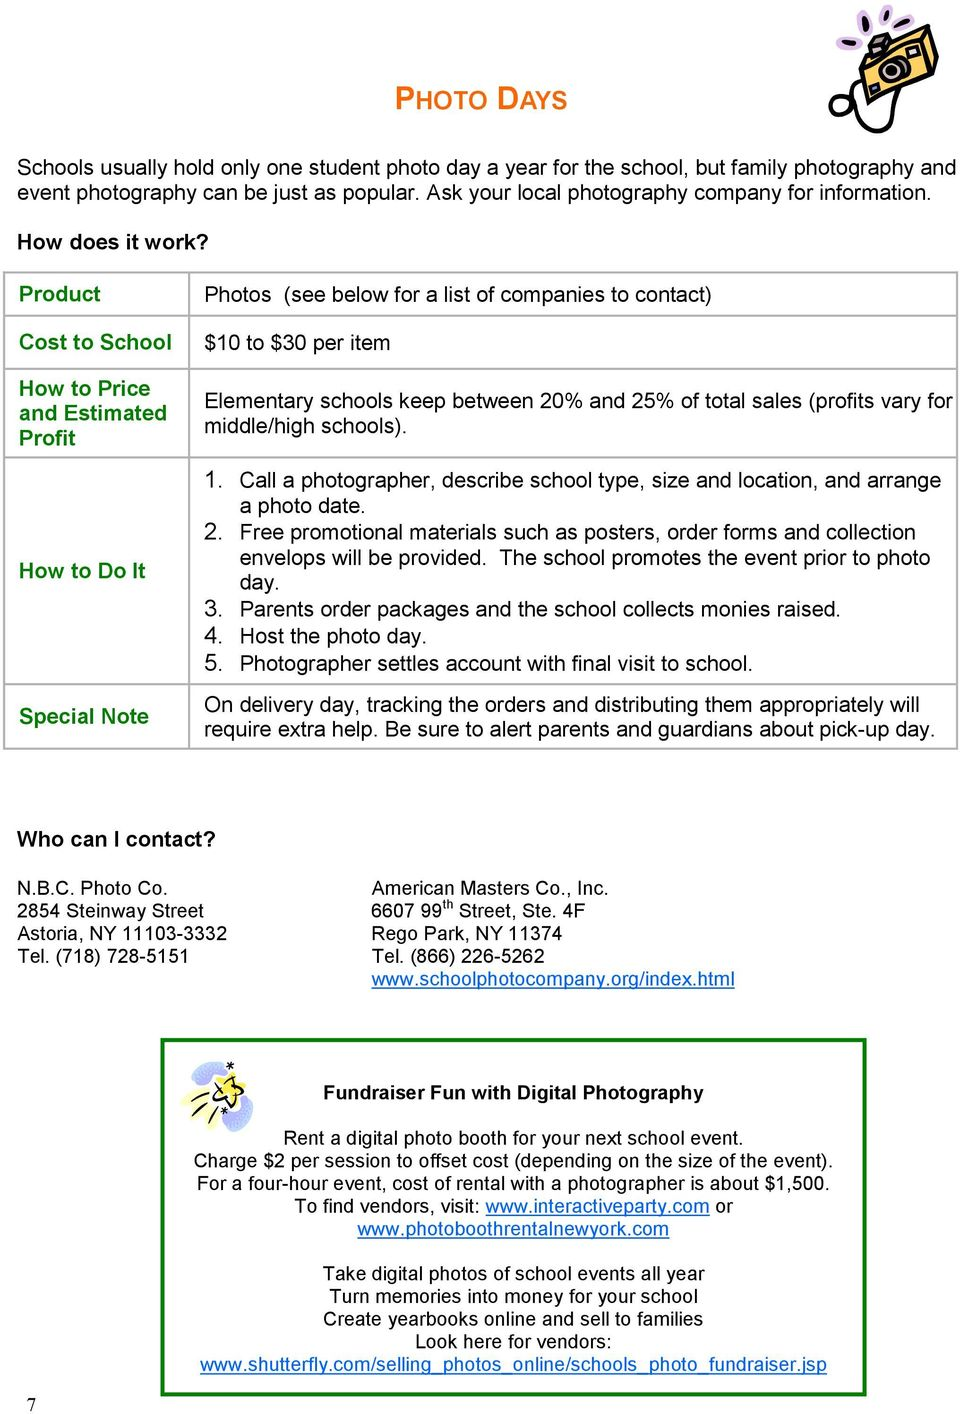 Cost to School How to Price and Estimated Profit How to Do It Photos (see below for a list of companies to contact) $10 to $30 per item Elementary schools keep between 20% and 25% of total sales